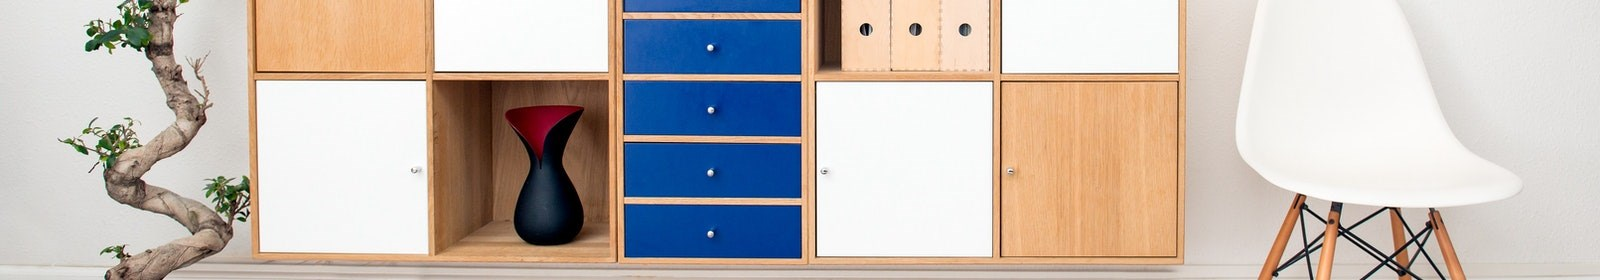 KonMari, Feng Shui … or just neat and tiny: What makes for a productive workspace